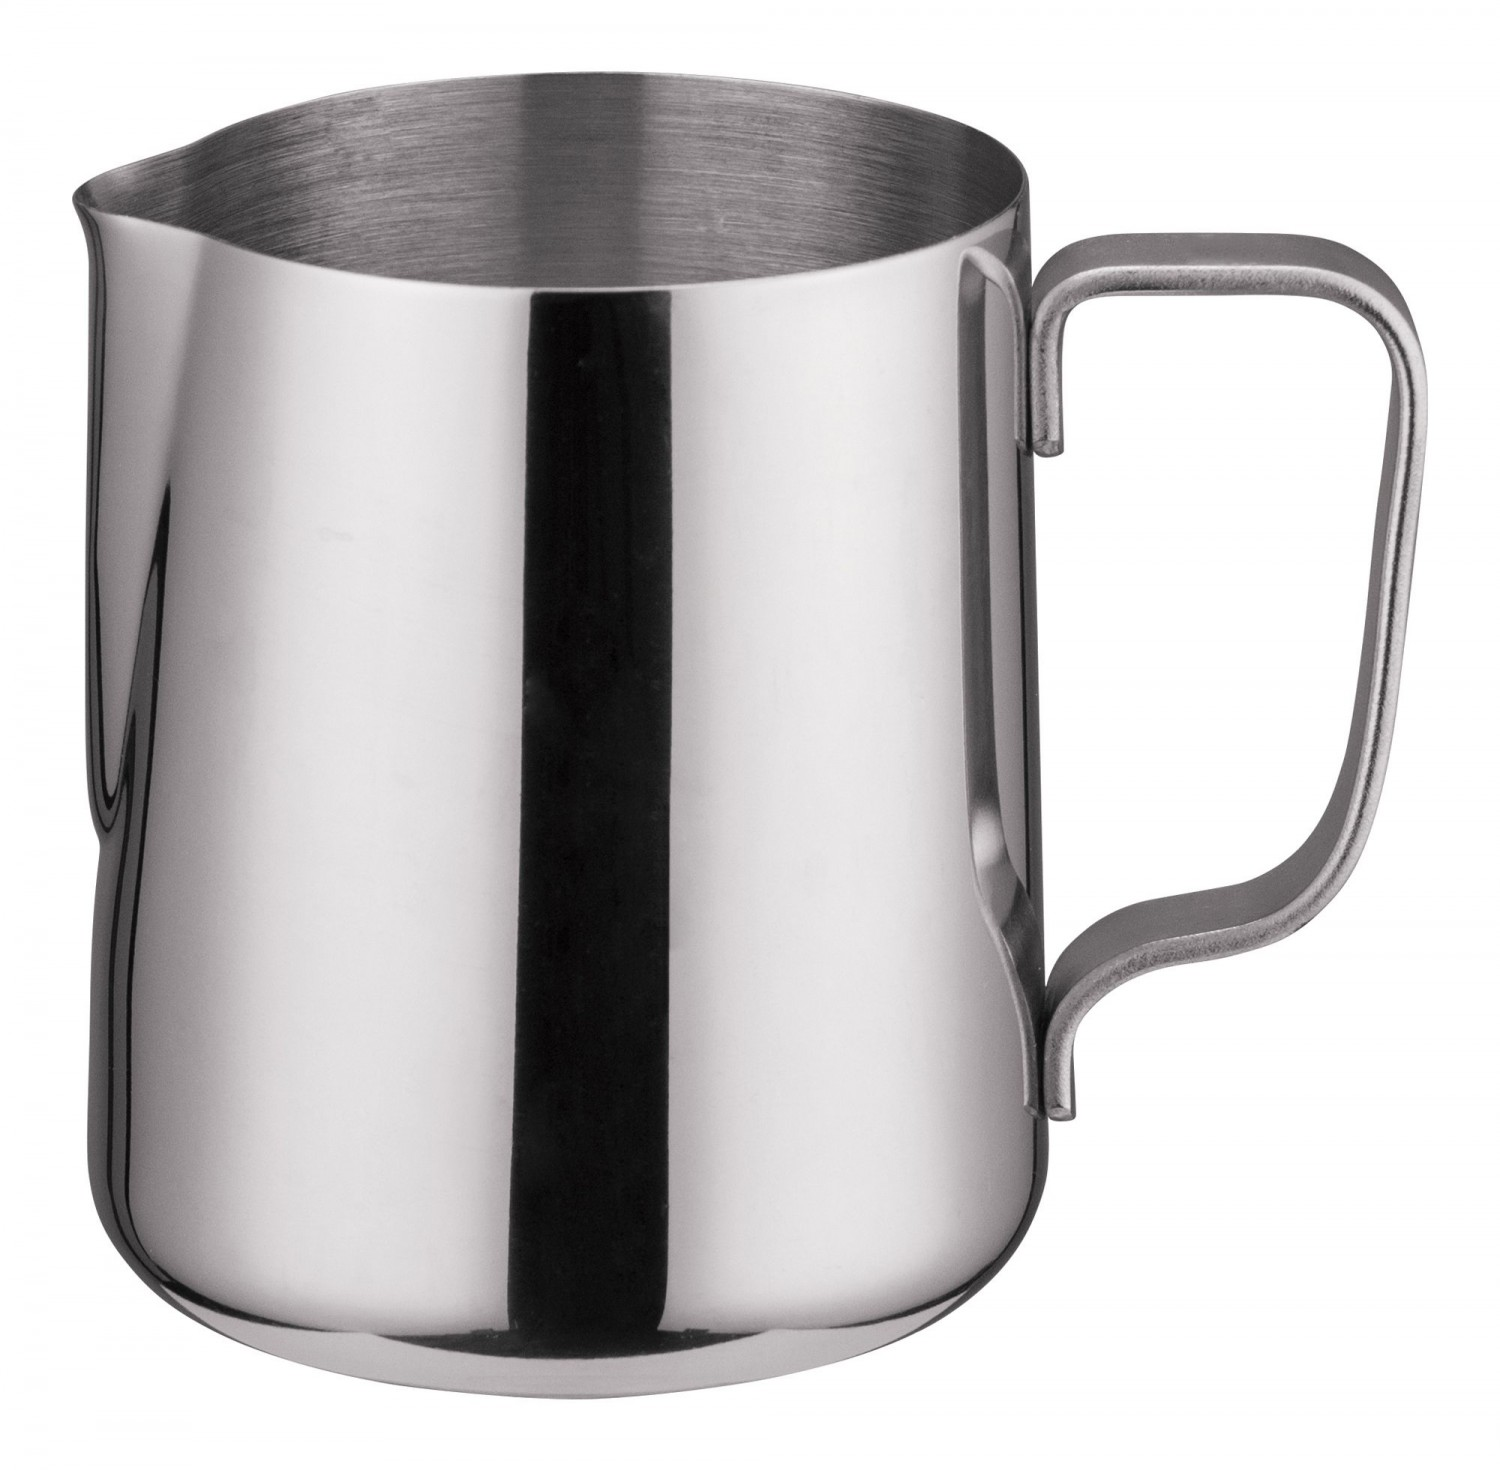 Winco WP-20 Stainless Steel 20 Oz. Water Pitcher